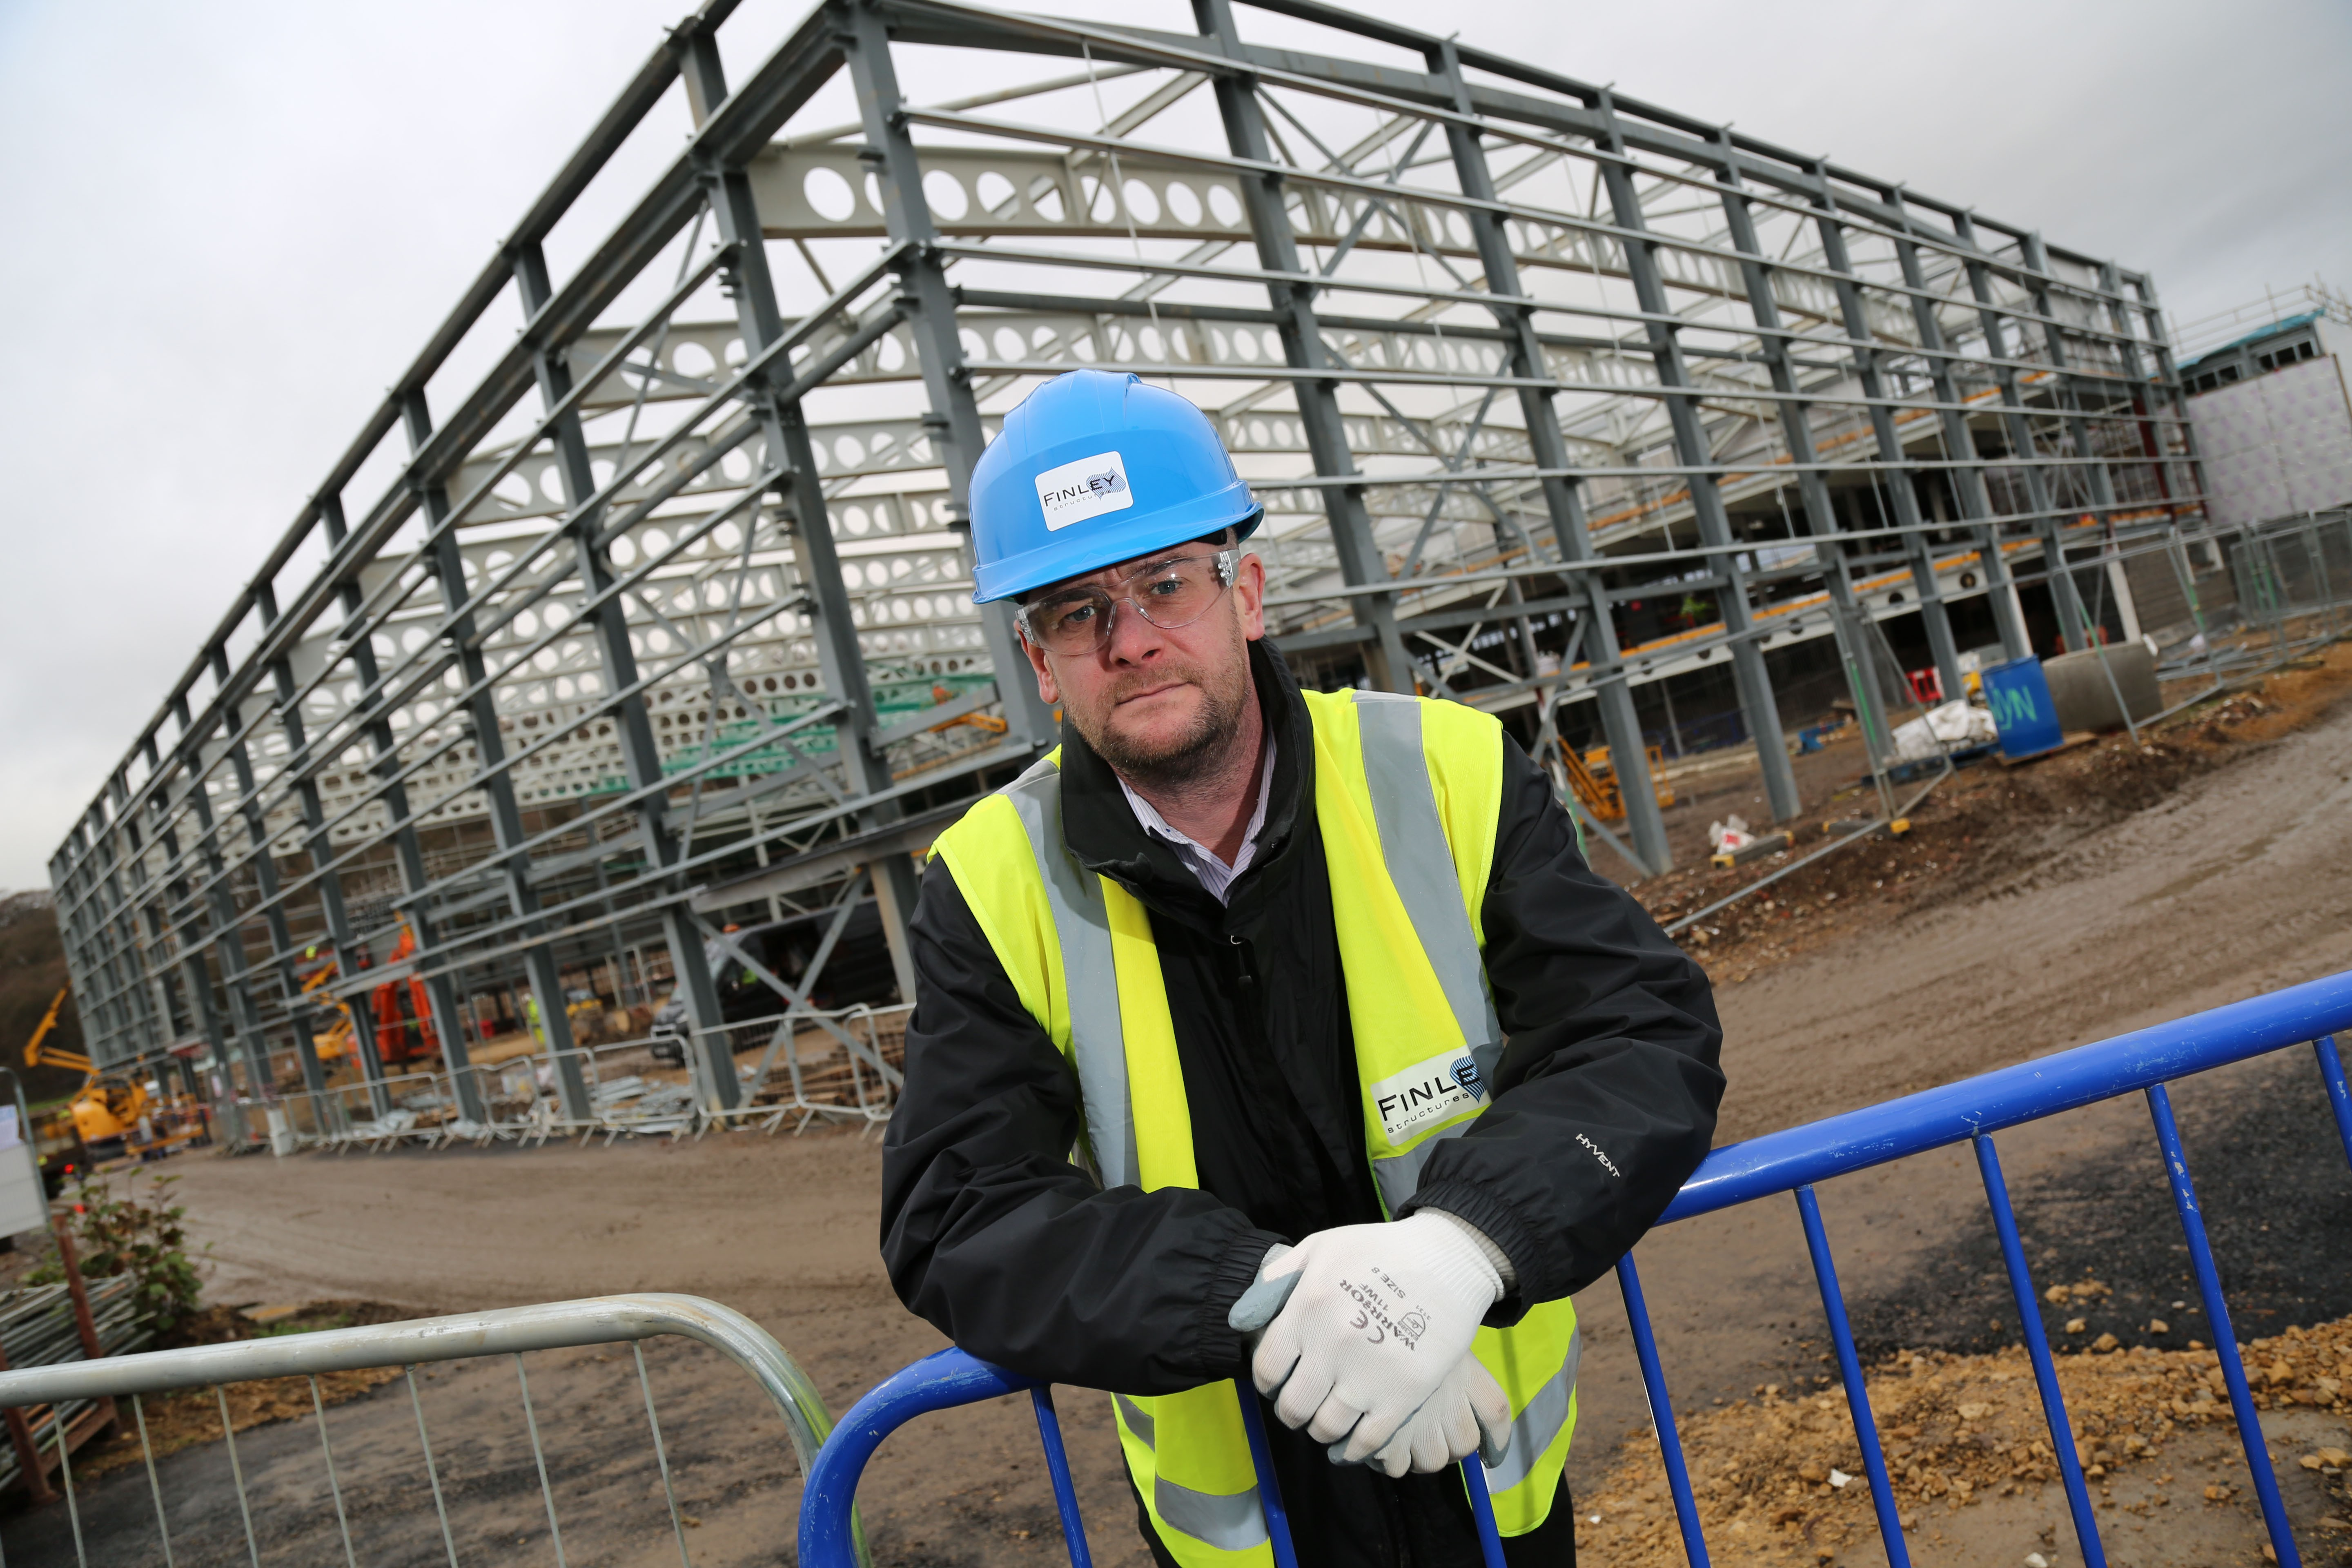 Praise for 'Proactive' Finley Structures